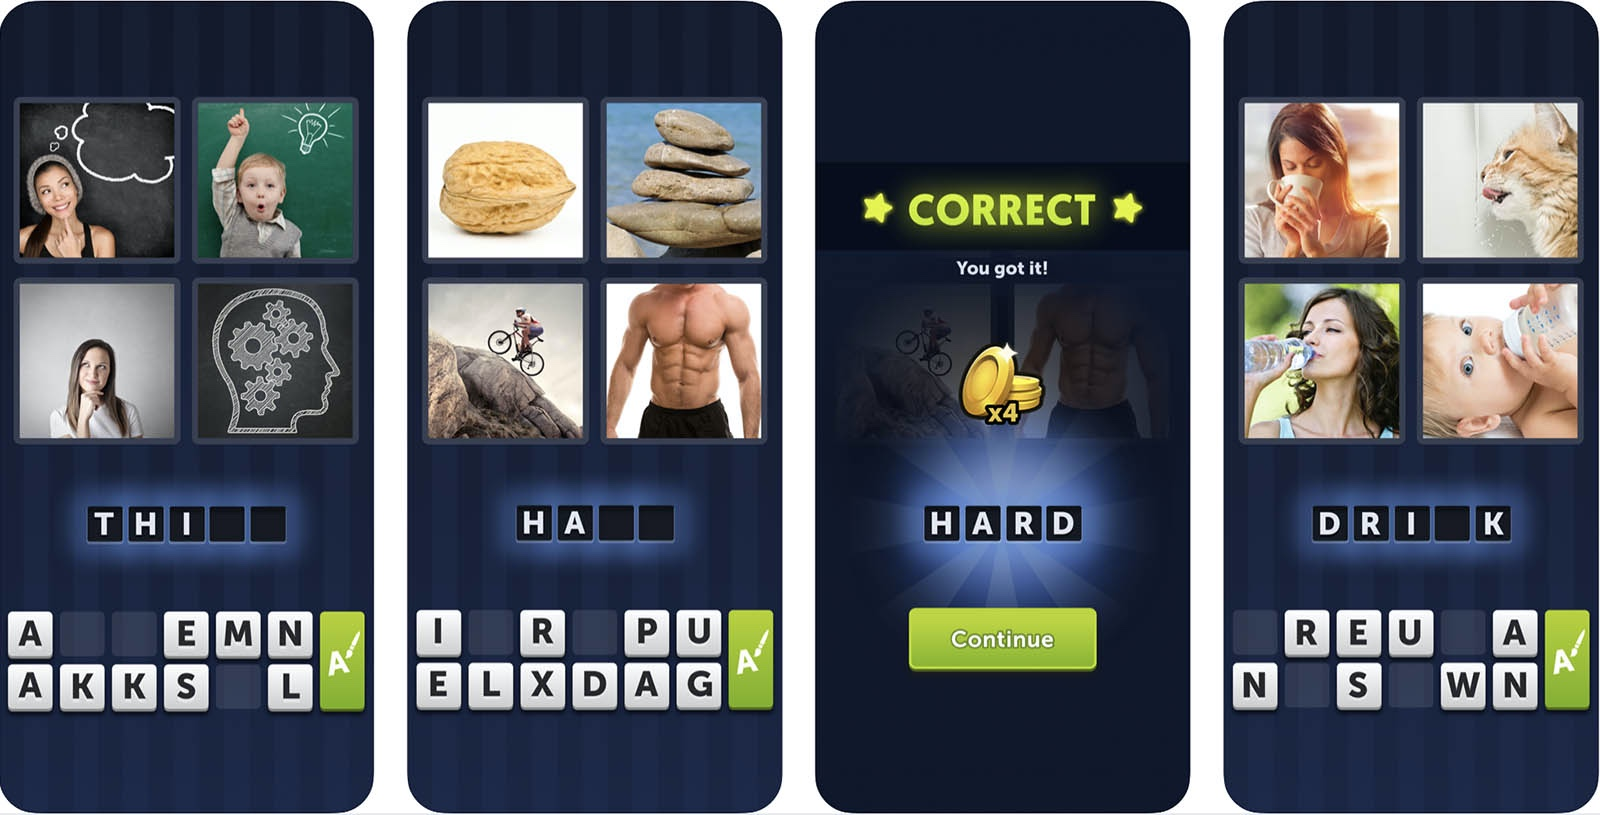 Screenshot of 4 Pics 1 Word game